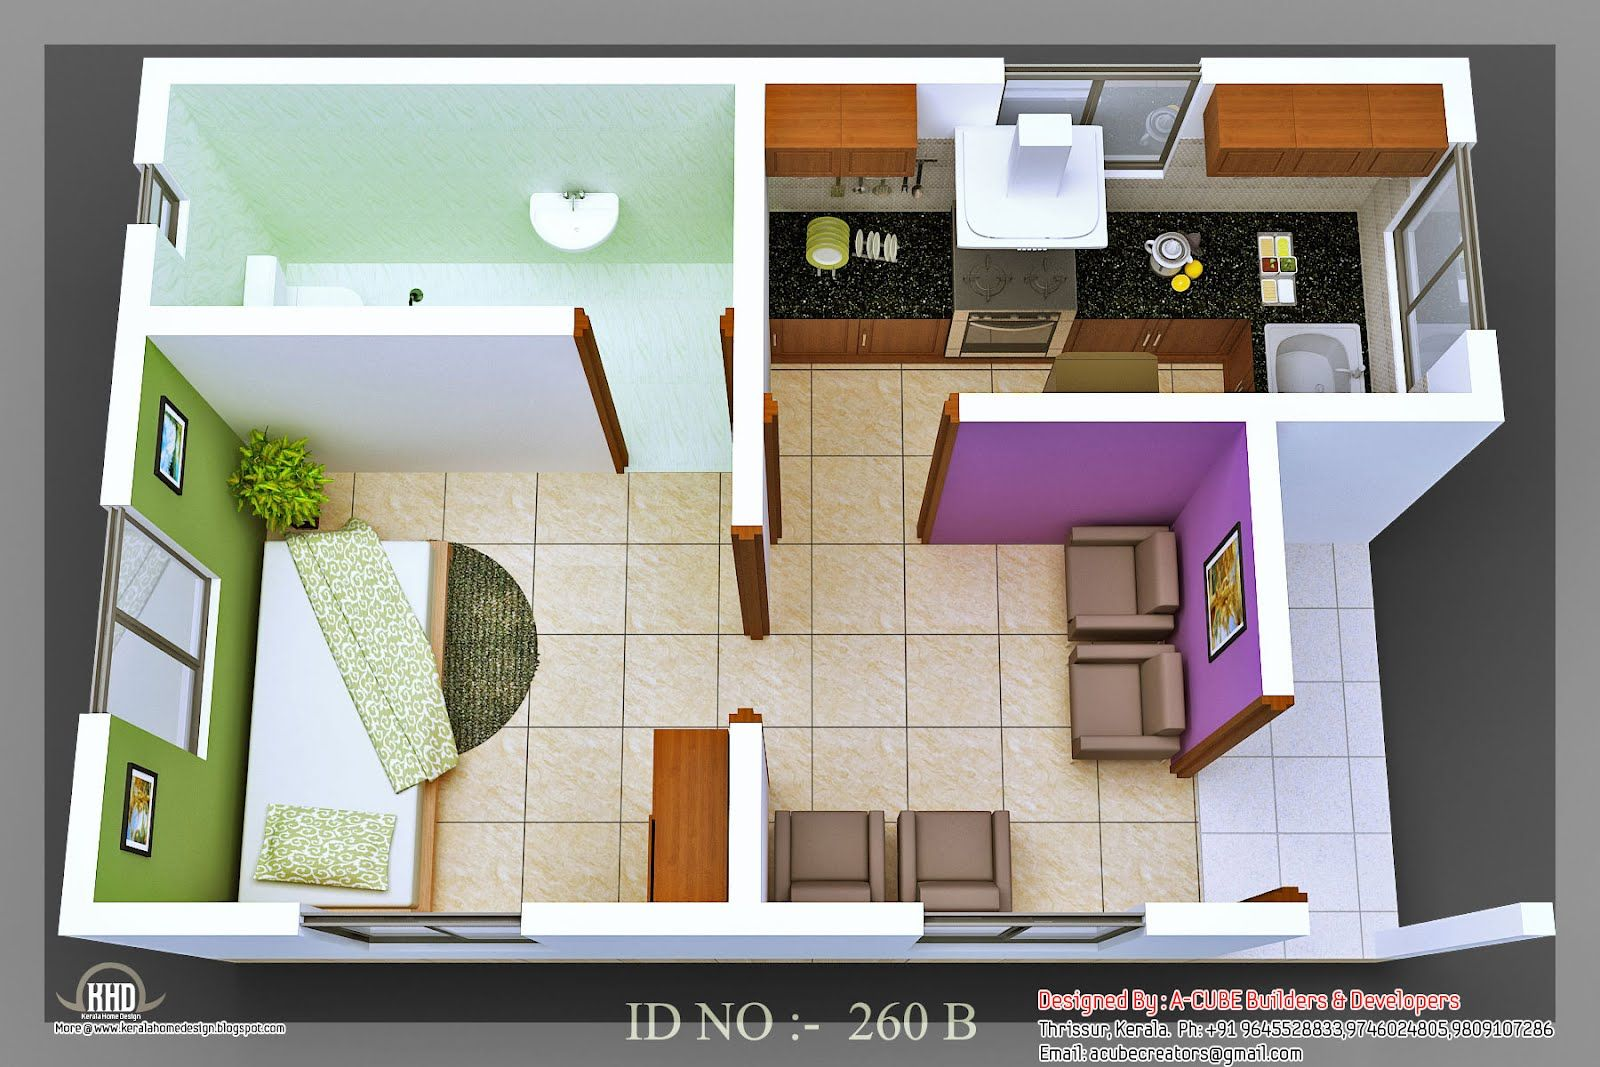 Tremendous 17 Best Images About Small House Plan On Pinterest Small House Largest Home Design Picture Inspirations Pitcheantrous